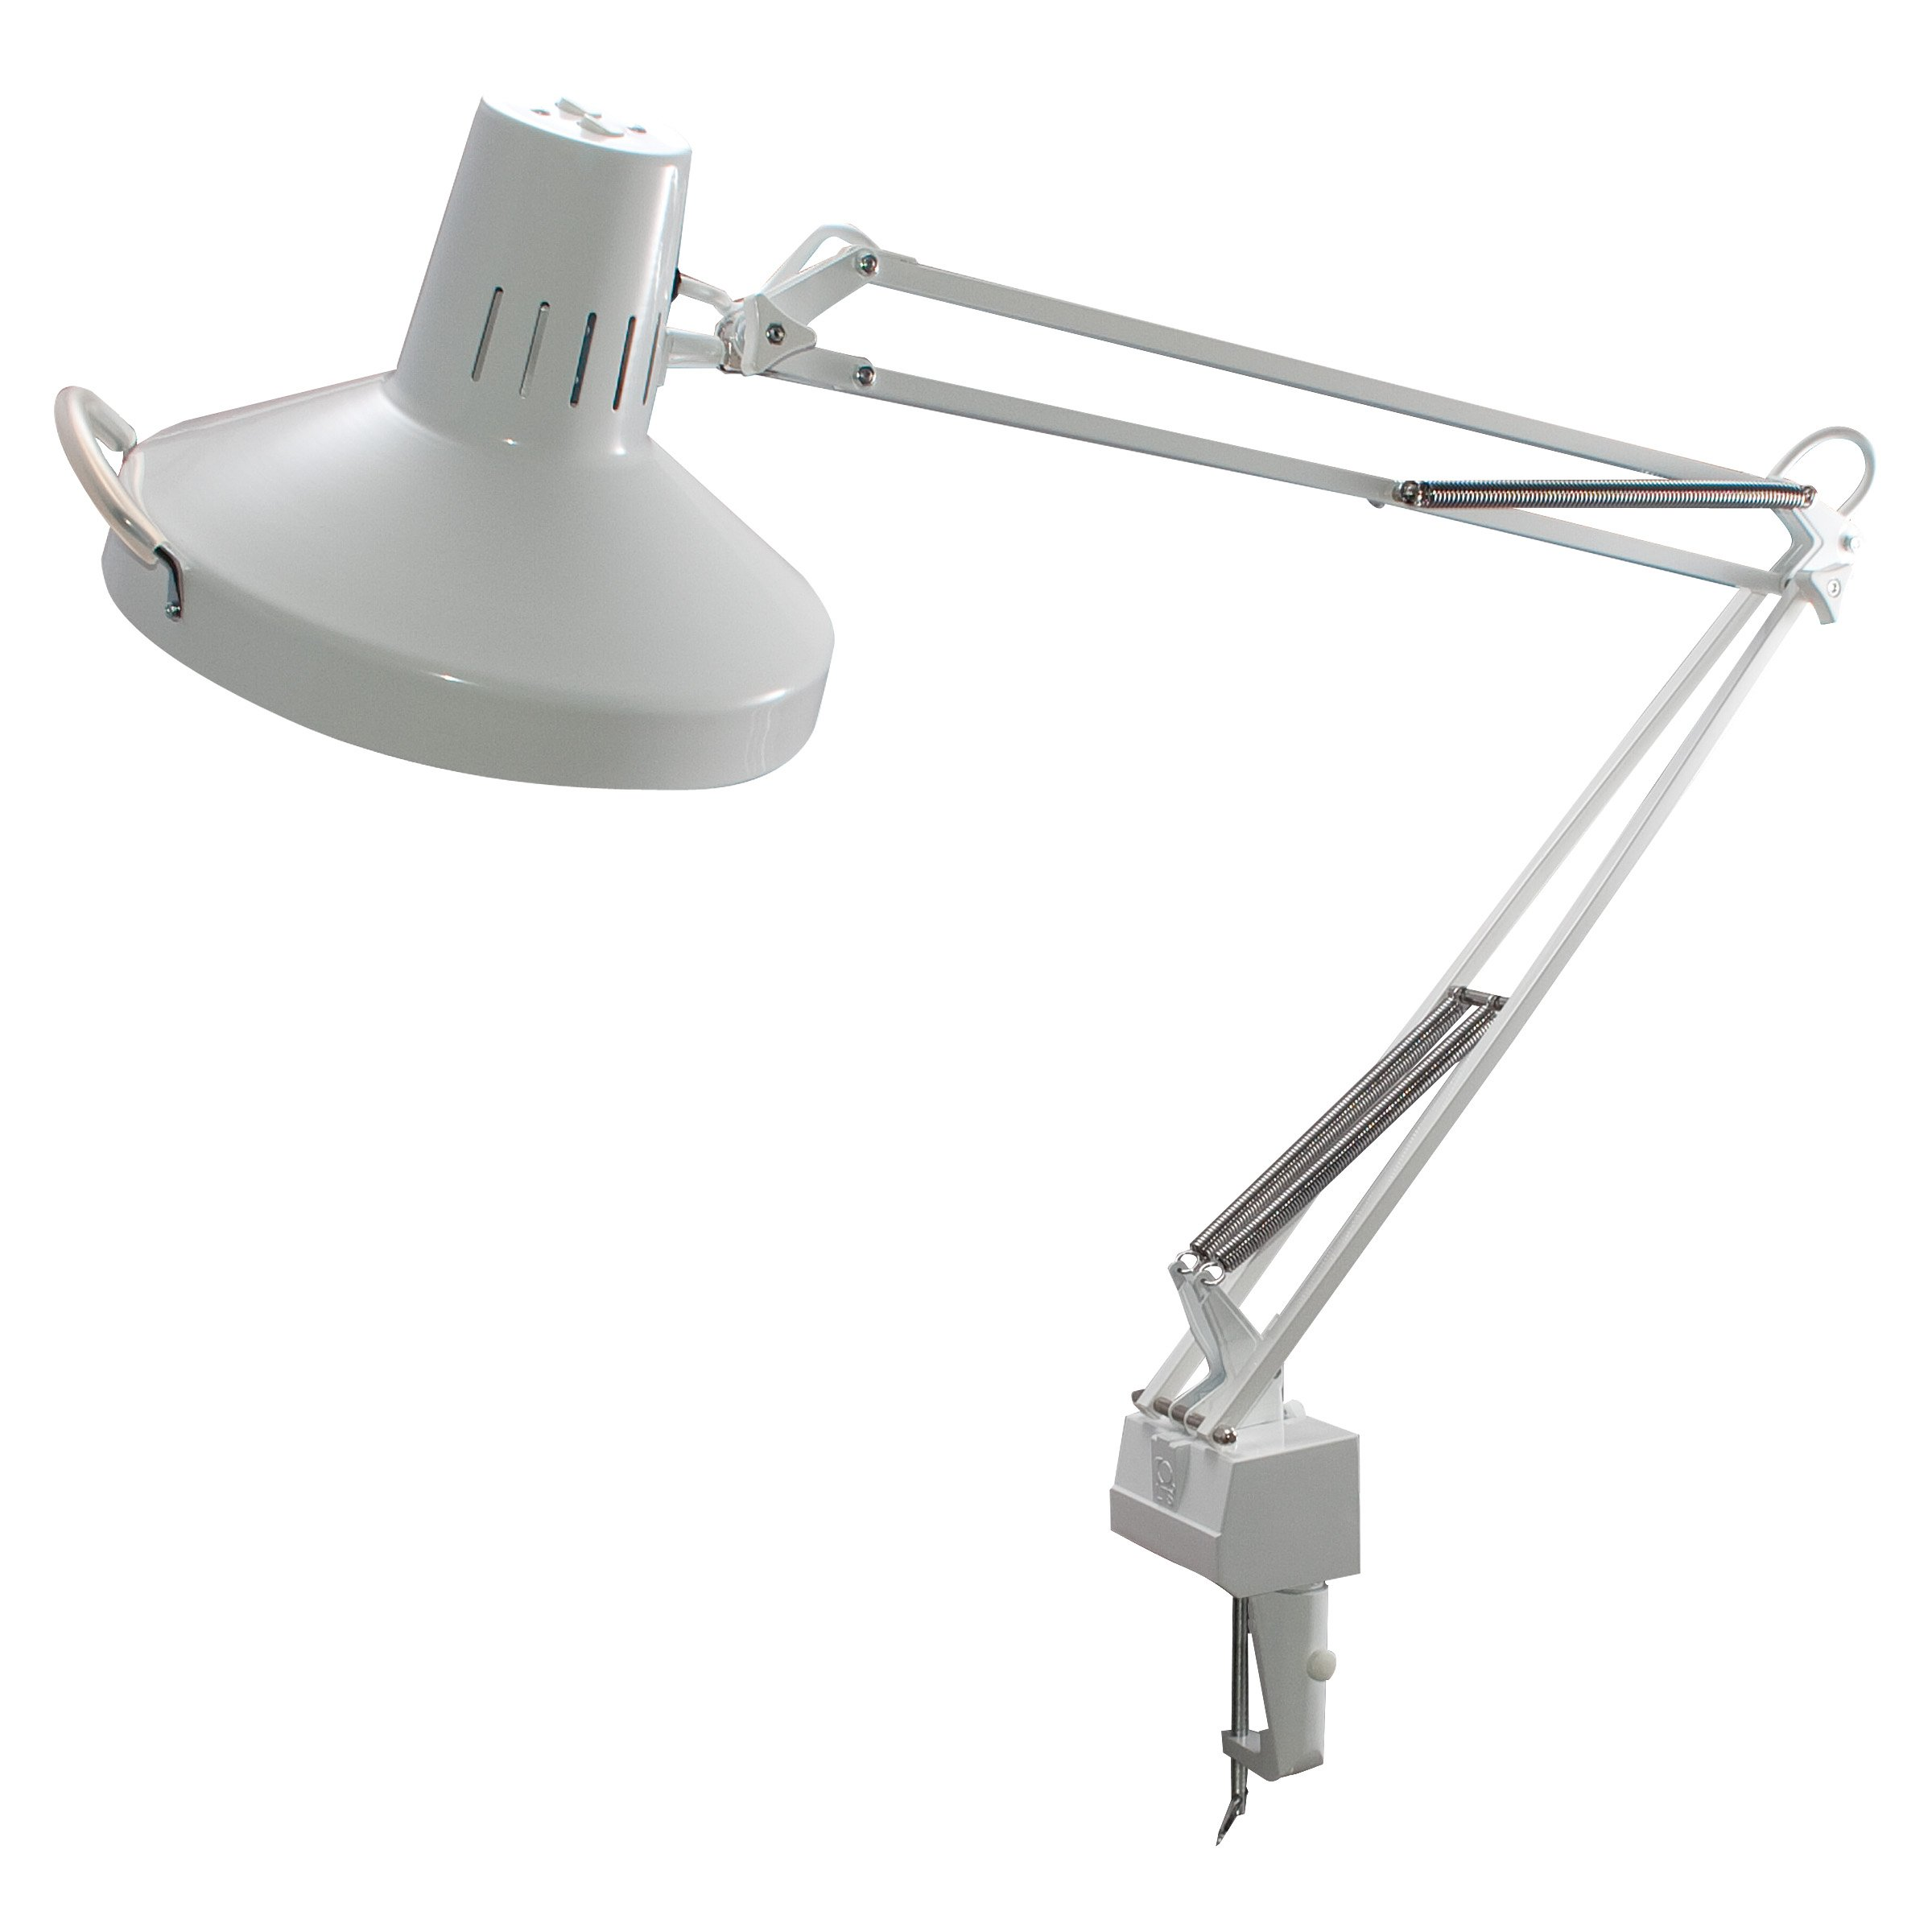 Ledu L445WT Professional fluorescent/incandescent swing arm clamp-on lamp, 40 reach, white by Ledu